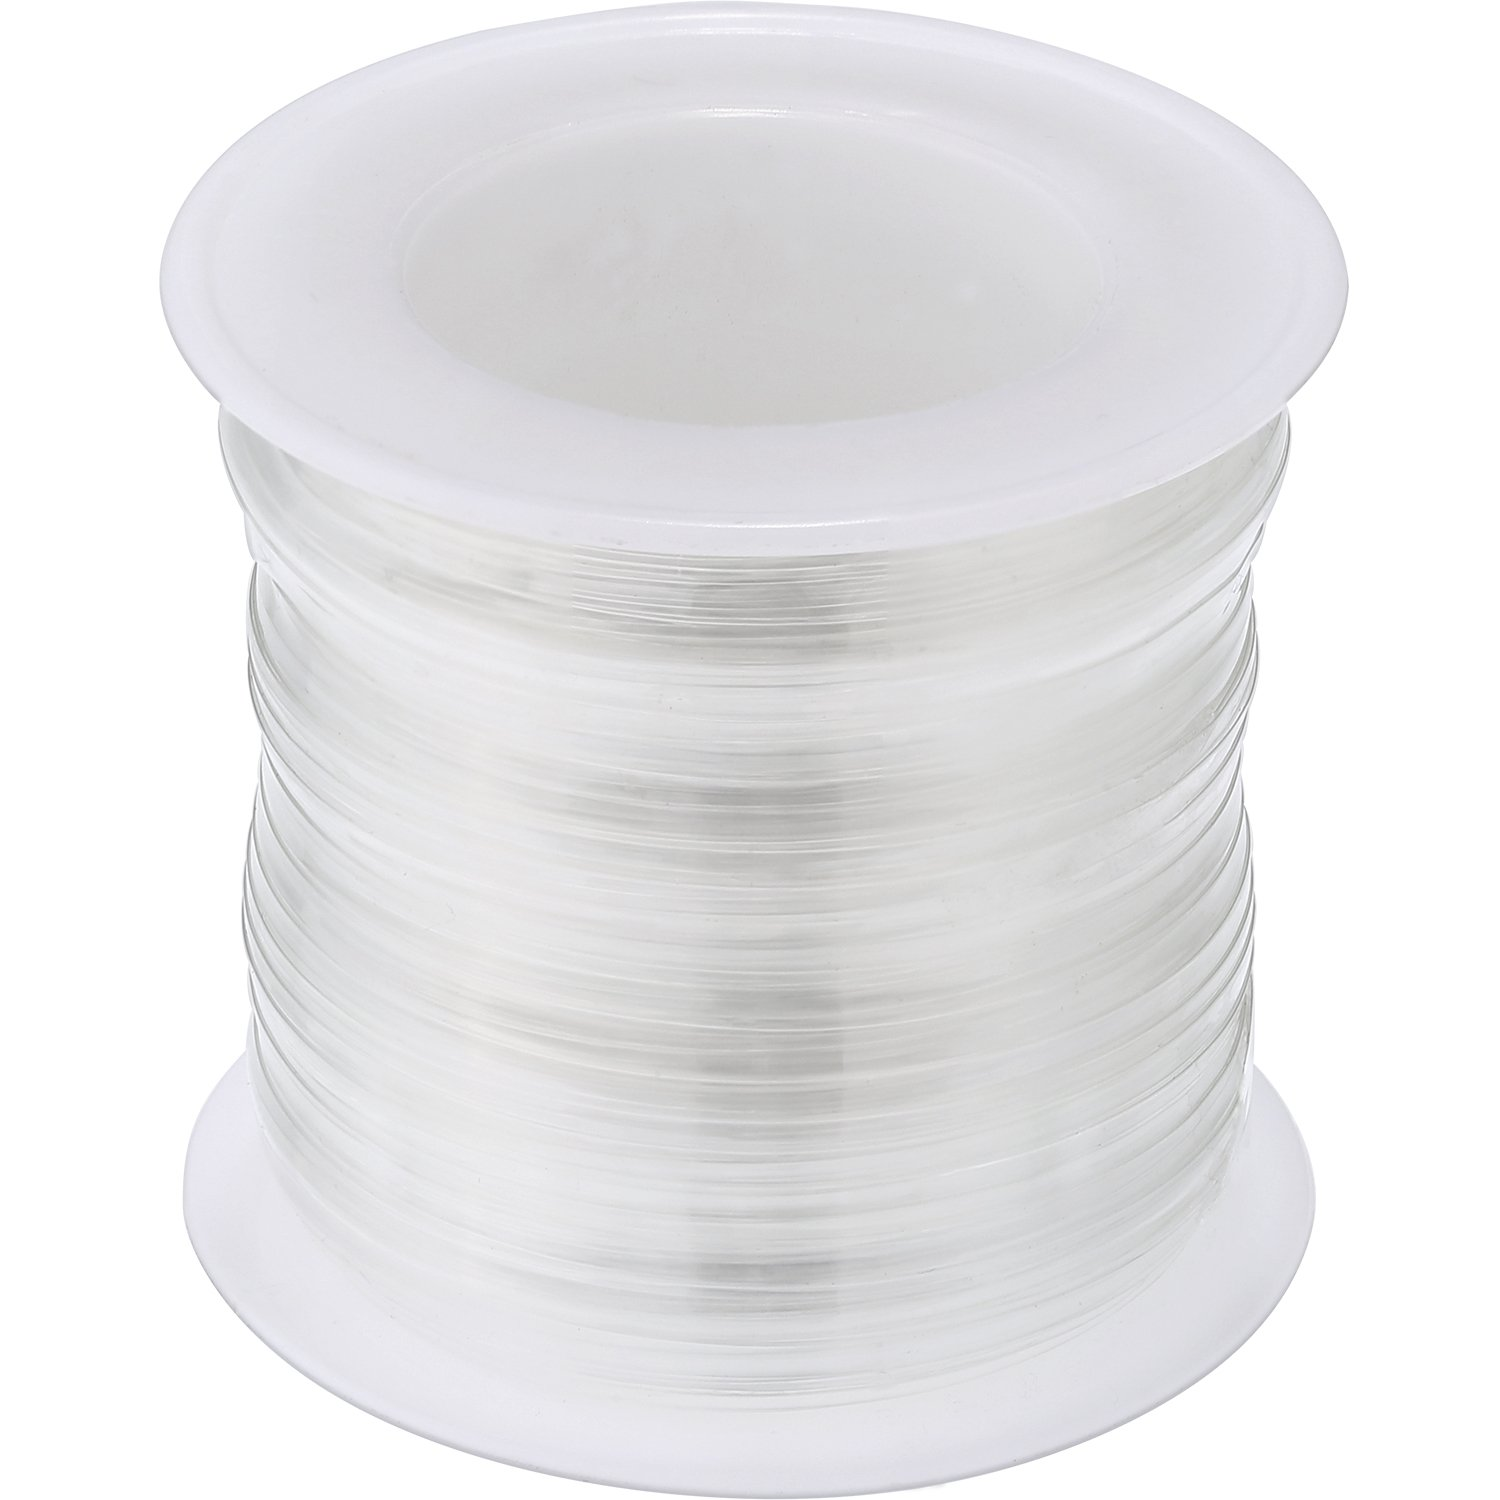 BBTO Clear Elastic Strap Lightweight Elastic Clear Bra Strap for Cloth Sewing Project (20 m Length, 0.30 cm Thickness) 4337000575